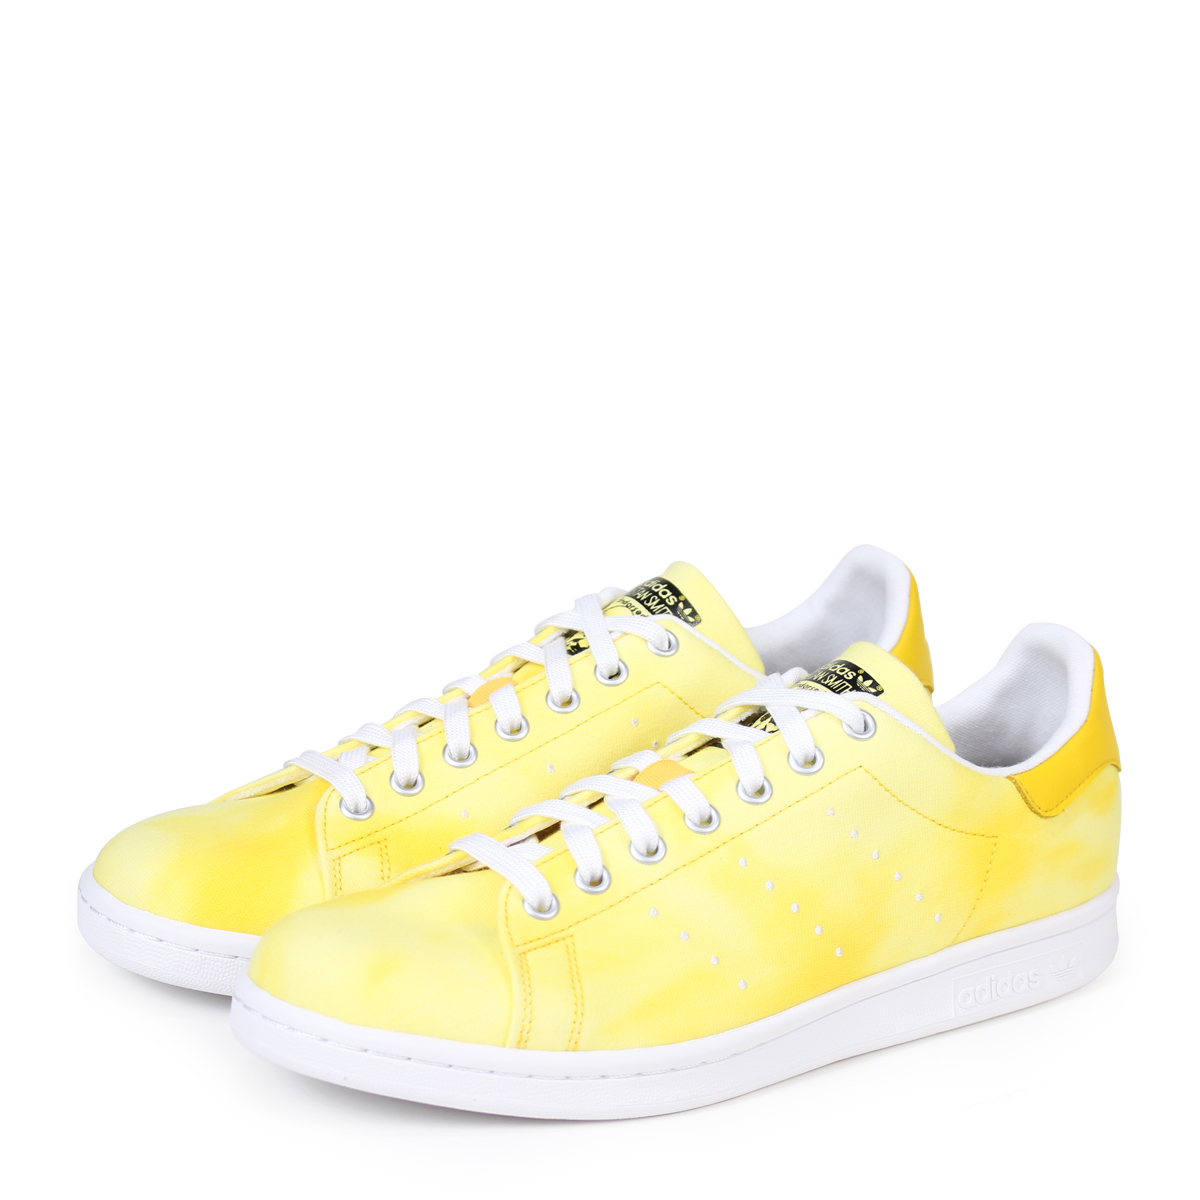 6f85605aeb4f6 ALLSPORTS  adidas Originals PW HU HOLI STAN SMITH Adidas Stan Smith sneakers  Farrell Williams men collaboration AC7042 yellow originals  load planned ...